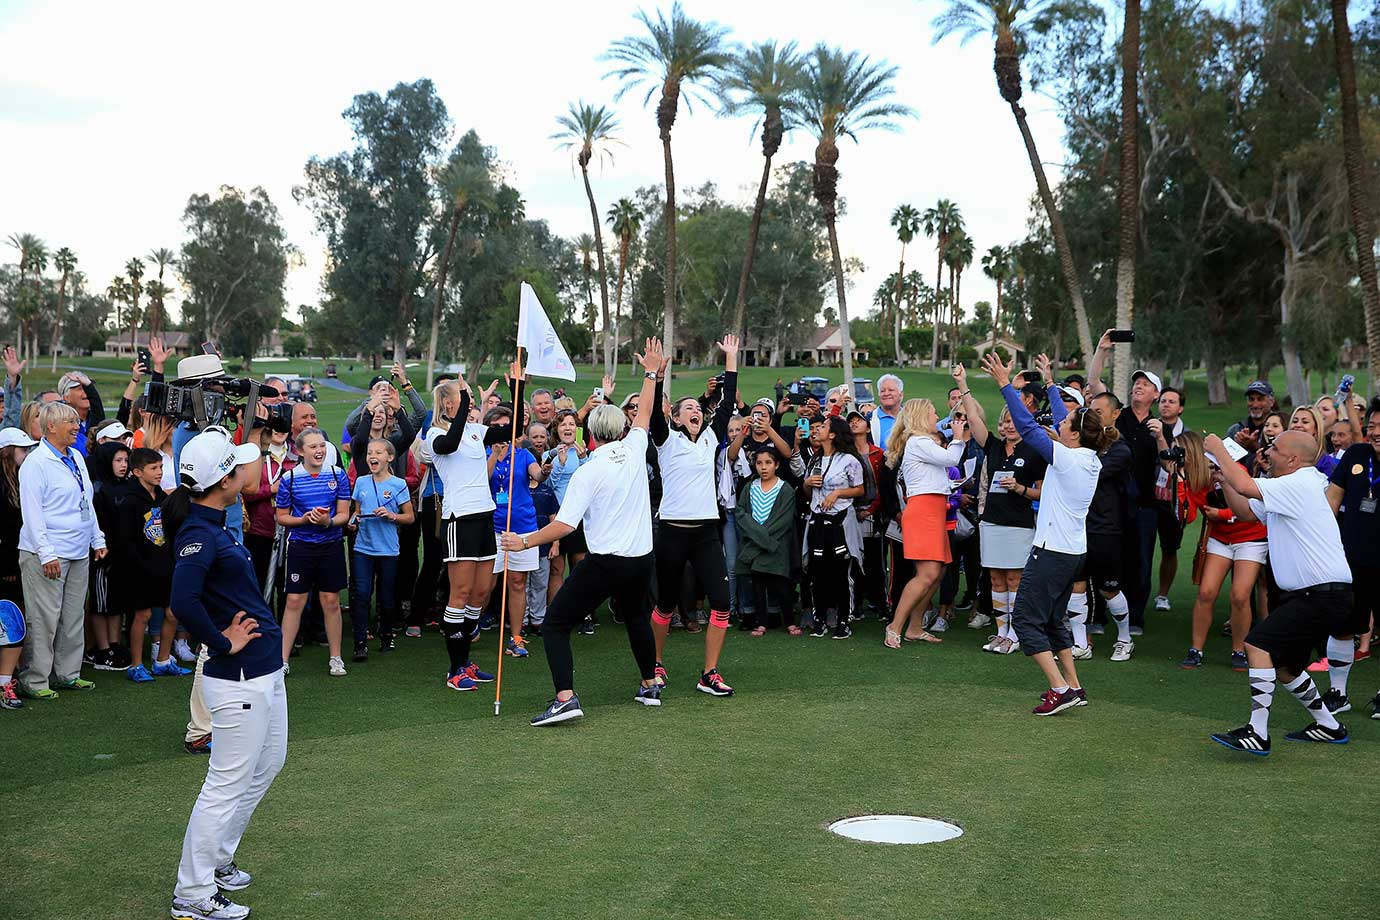 Paula Creamer celebrates with Abby Wambach and other players as her 'foot putt' goes into the hole during the ANA Footgolf Faceoff between Team USA and Team Japan as a preview for the ANA Inspiration at the Mission Hills Country Club in Rancho Mirage, Calif.